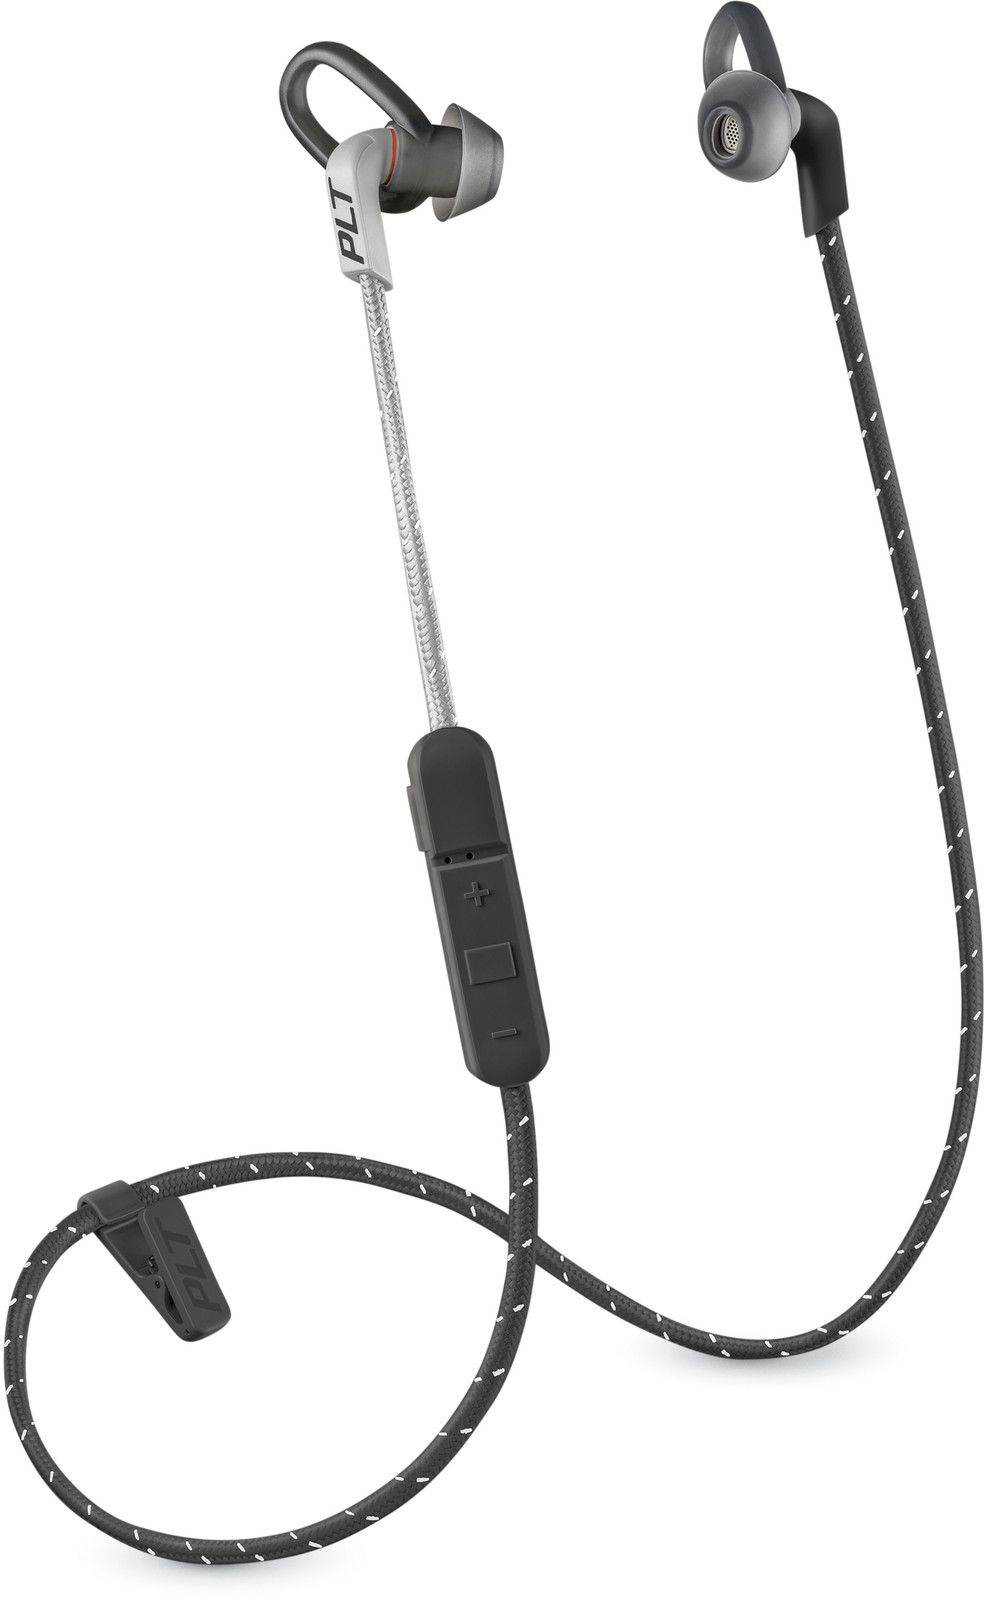 Plantronics Backbeat Fit 305 - Harmaa/lime green